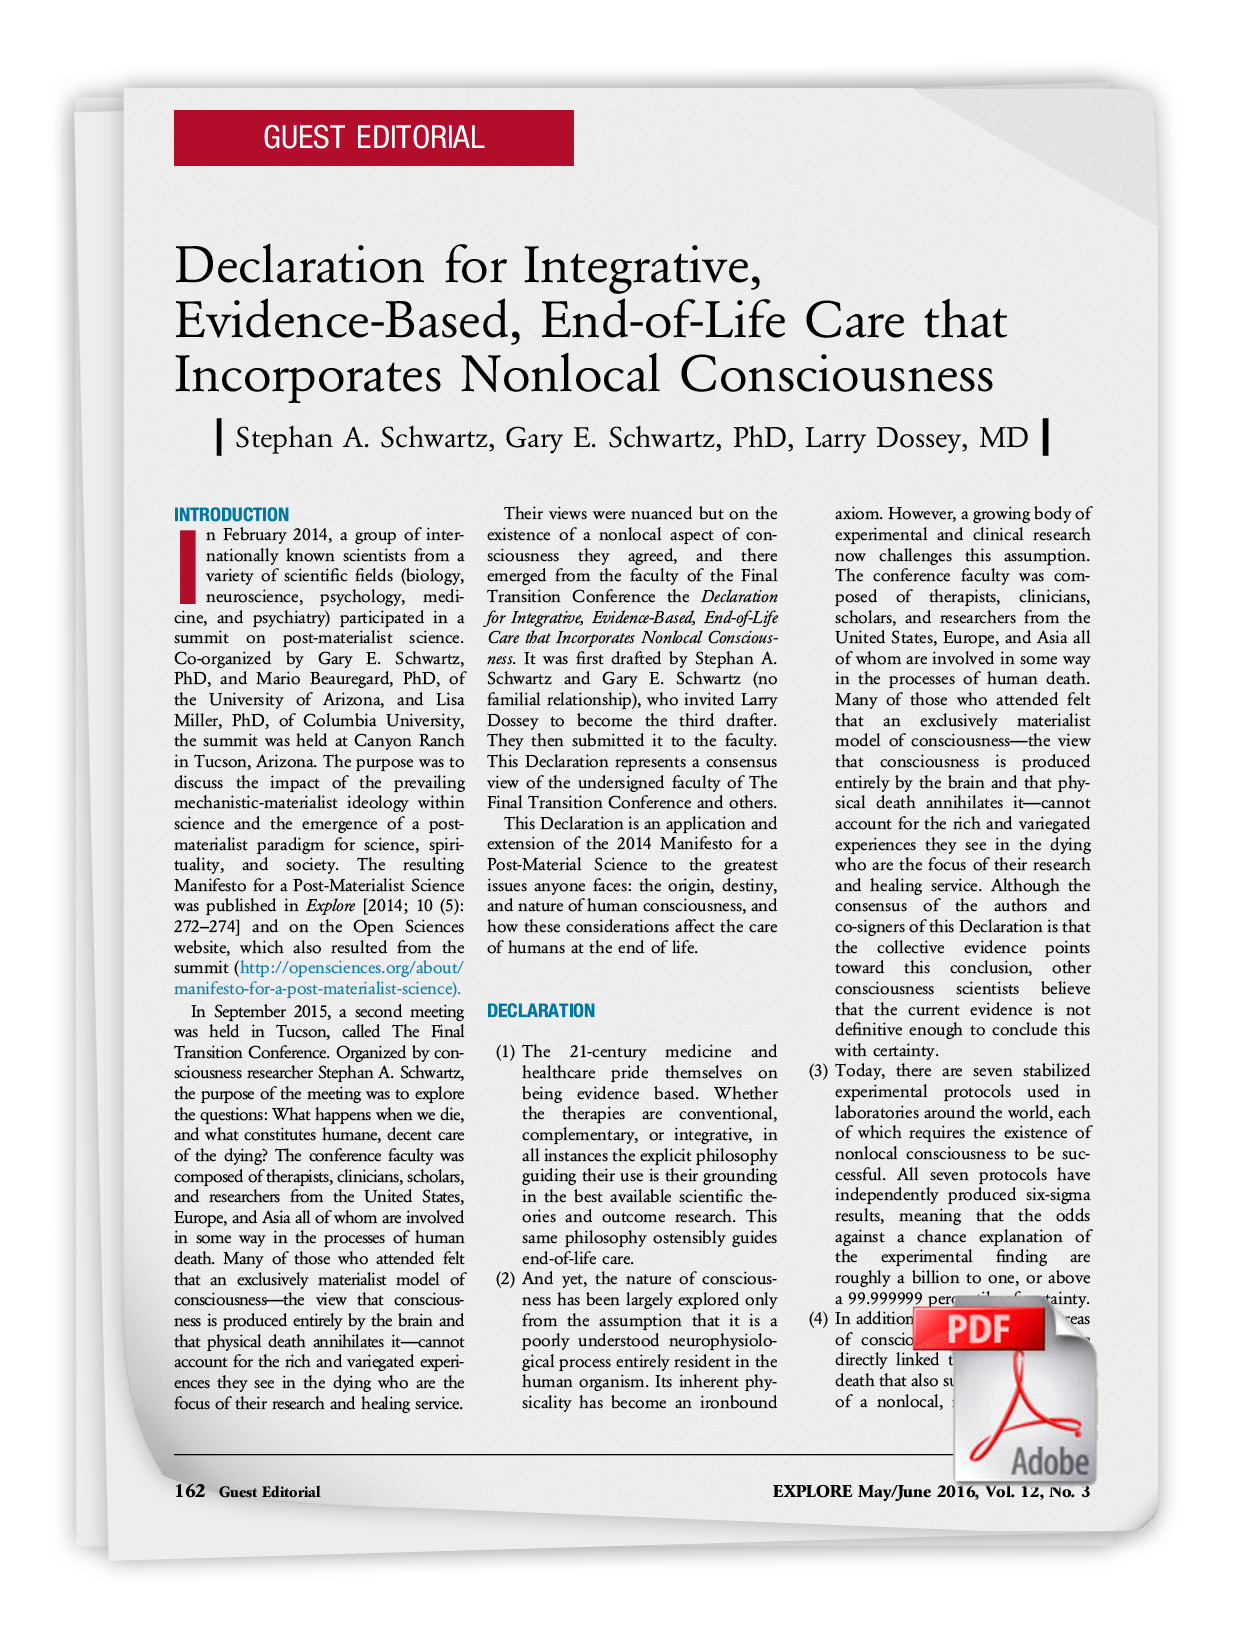 Declaration for Integrative, Evidence-Based, End-of-Life Care that Incorporates Nonlocal Consciousness